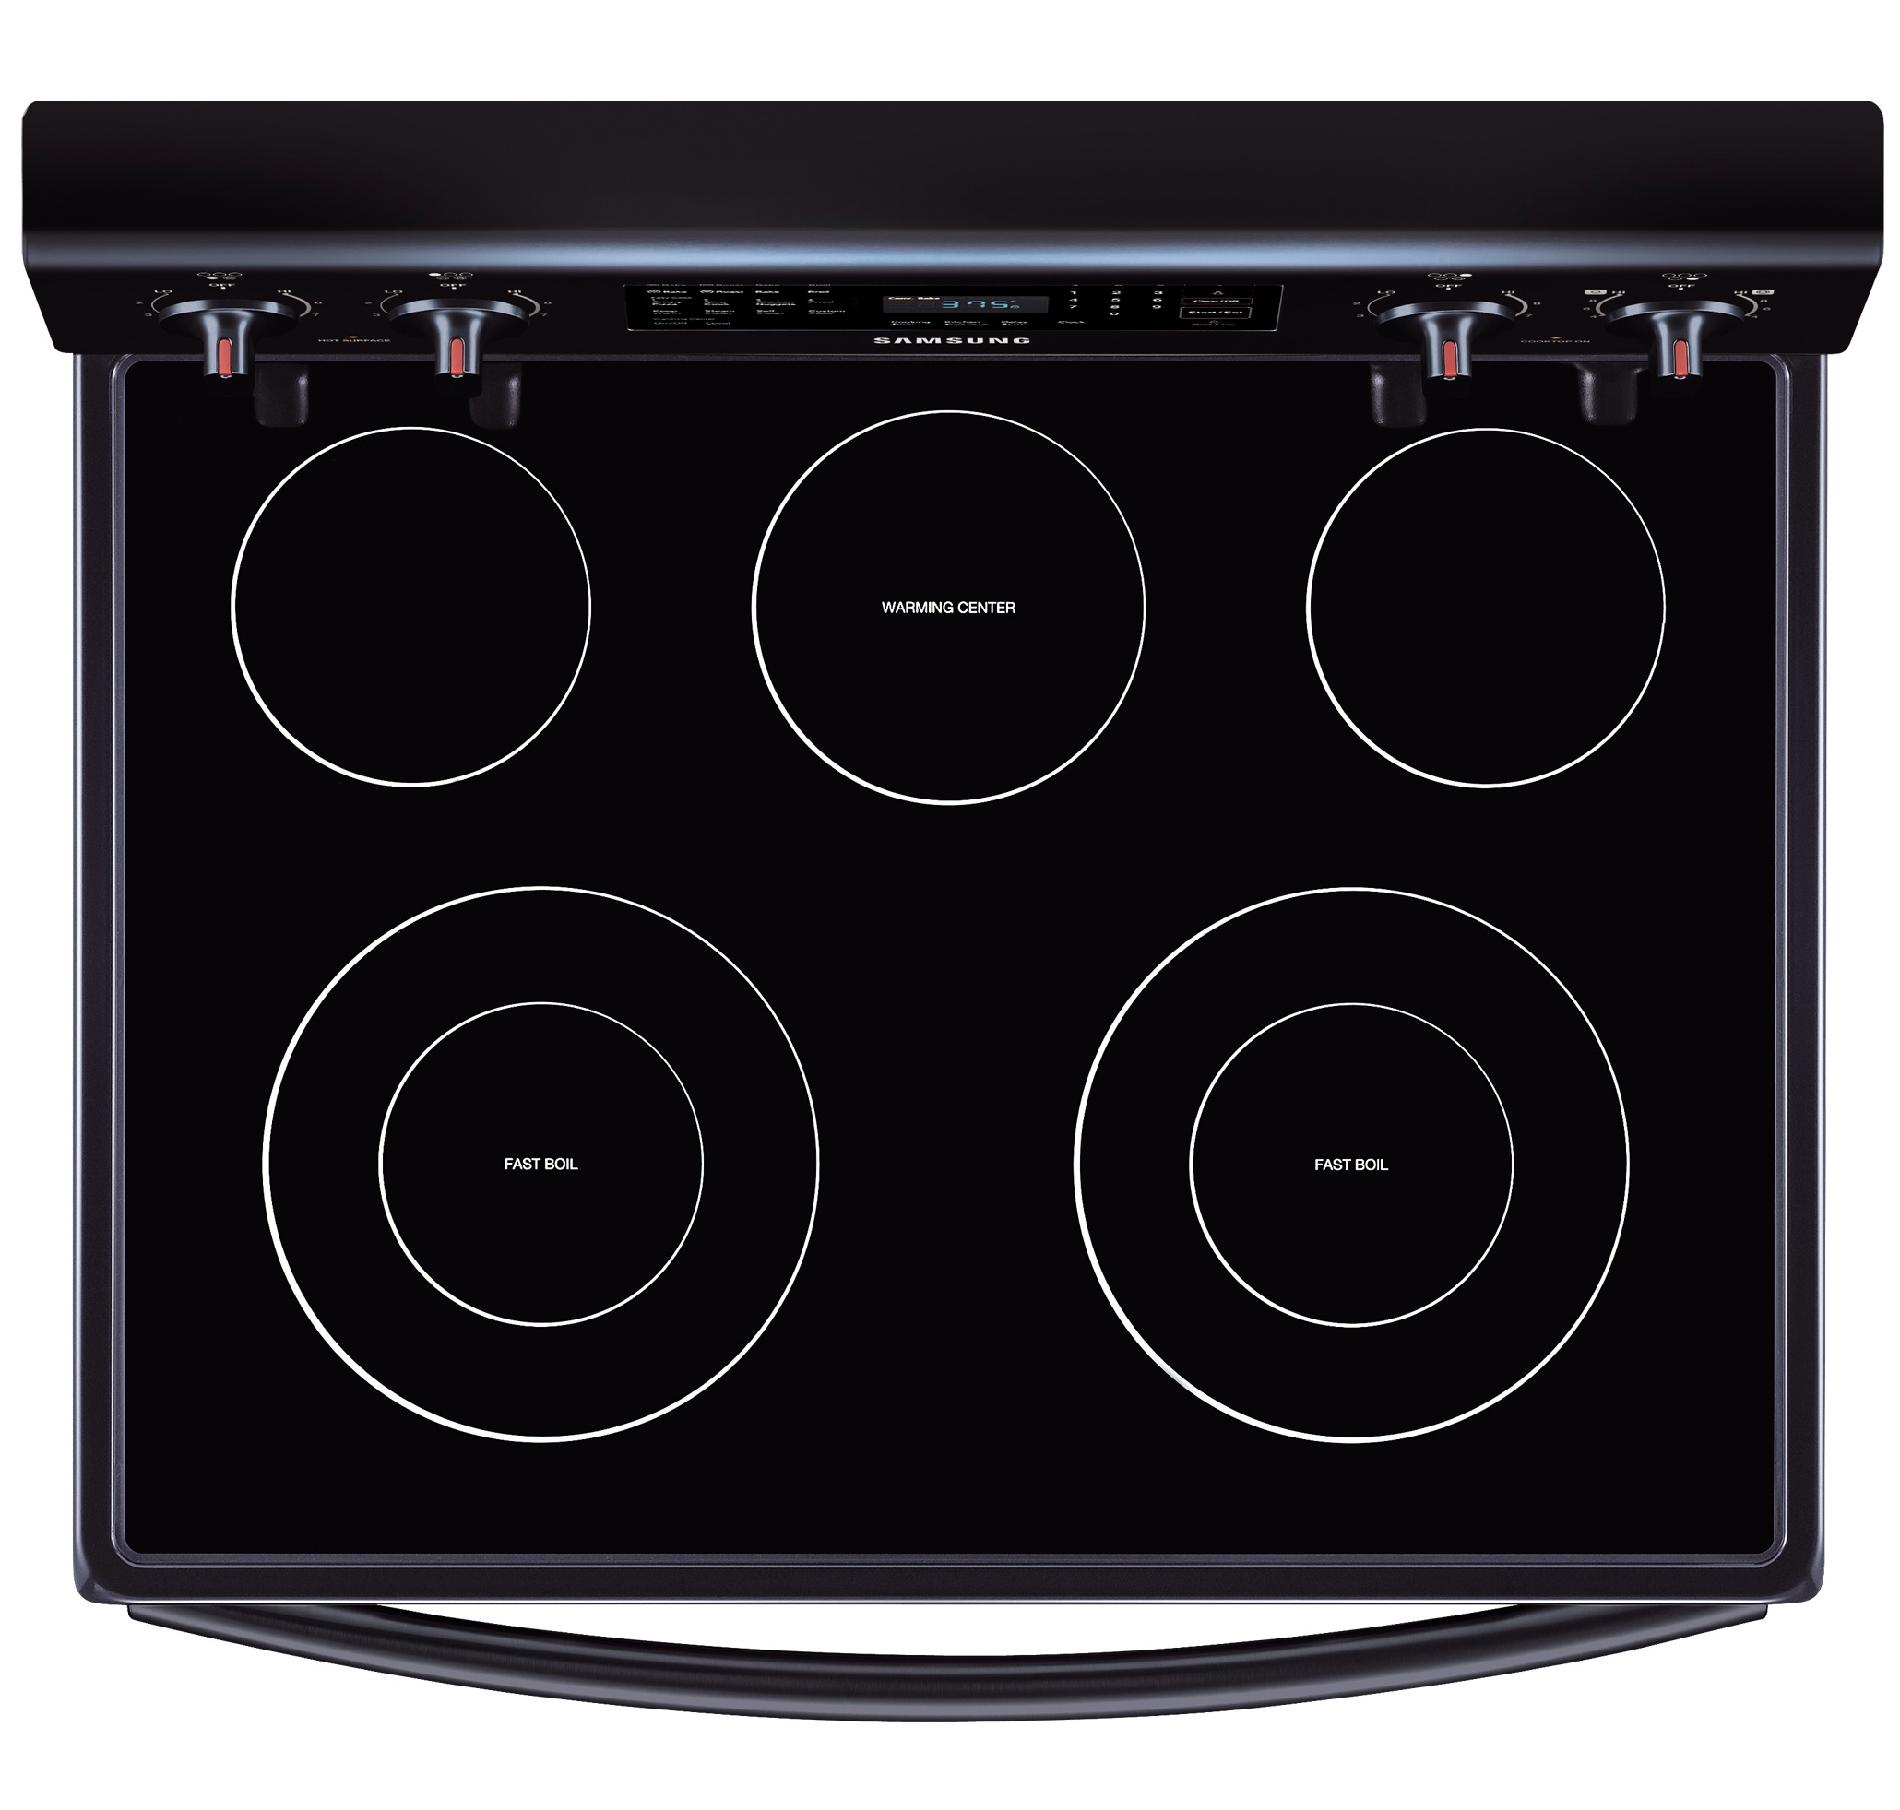 Samsung 5.9 cu. ft. Electric Range w/Convection - Black